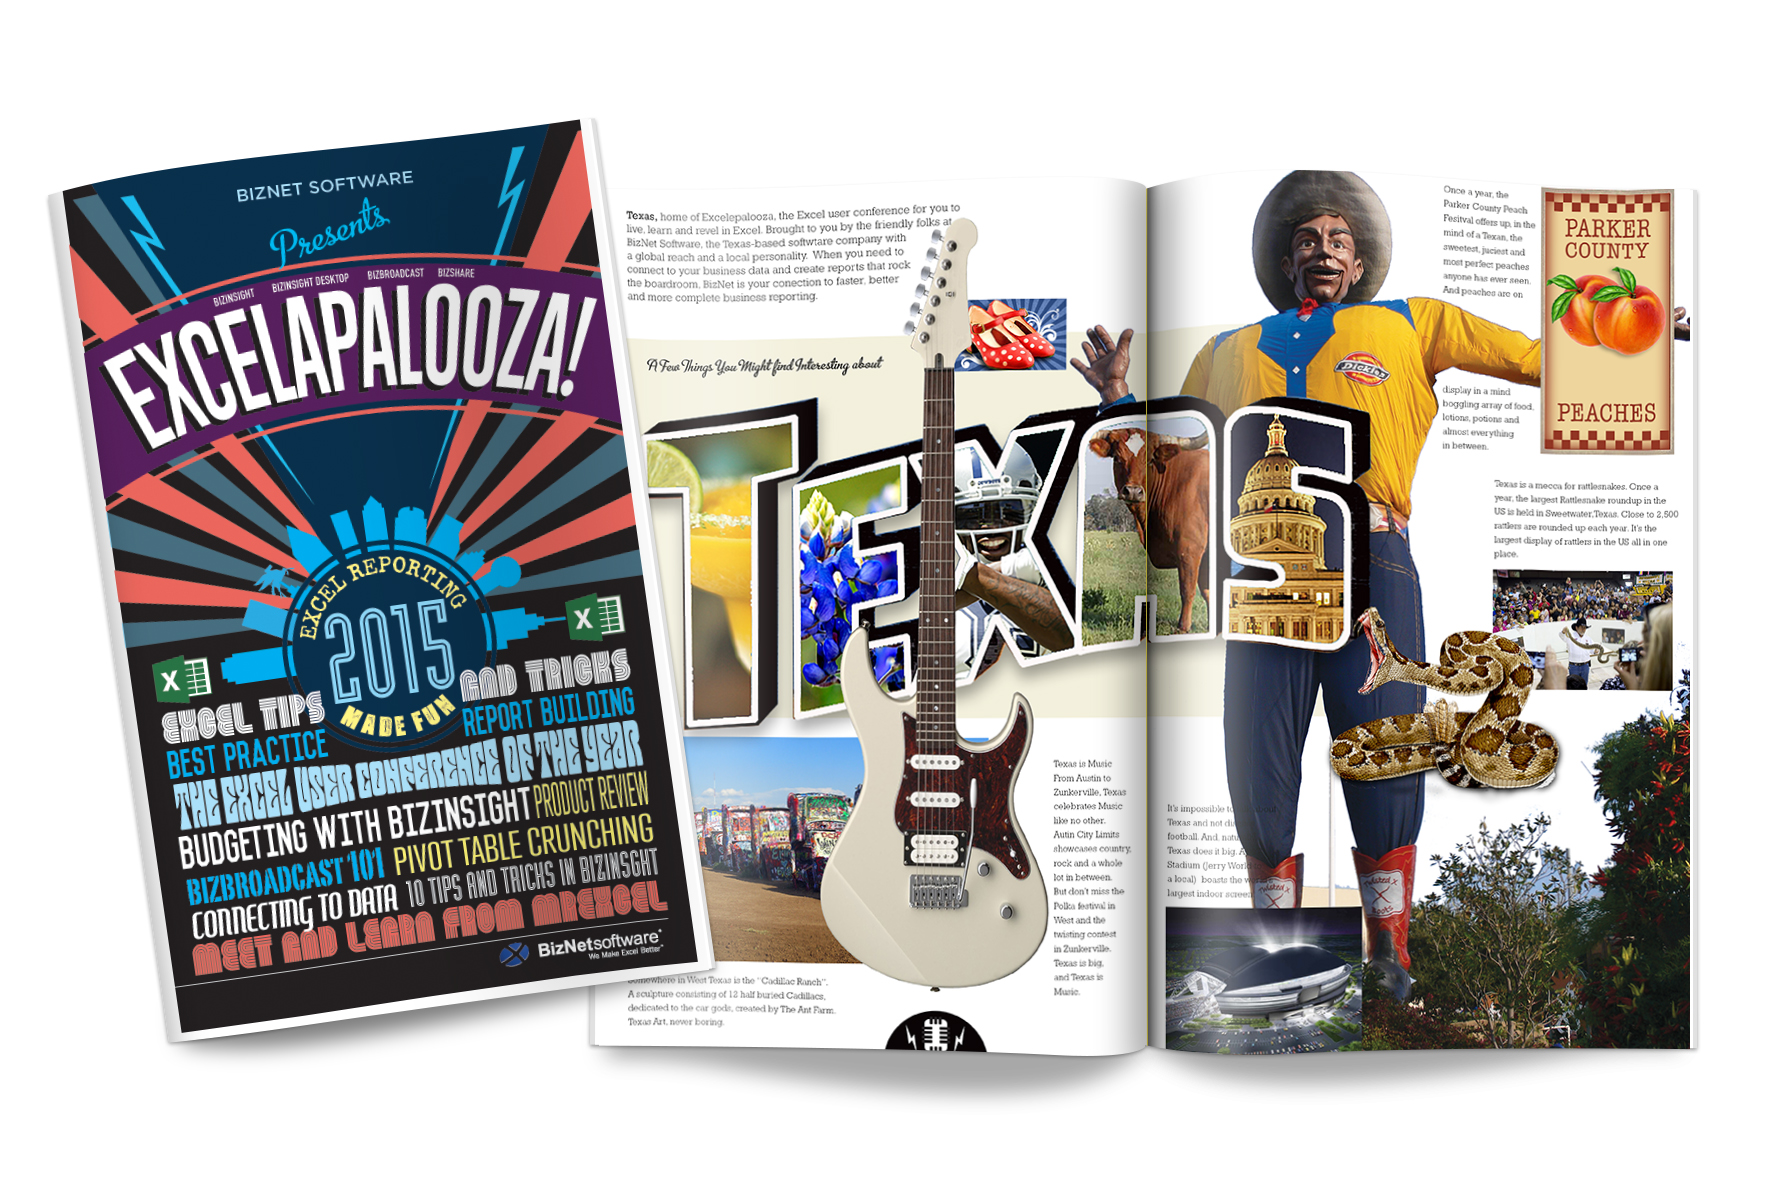 Excelapalooza Program Design